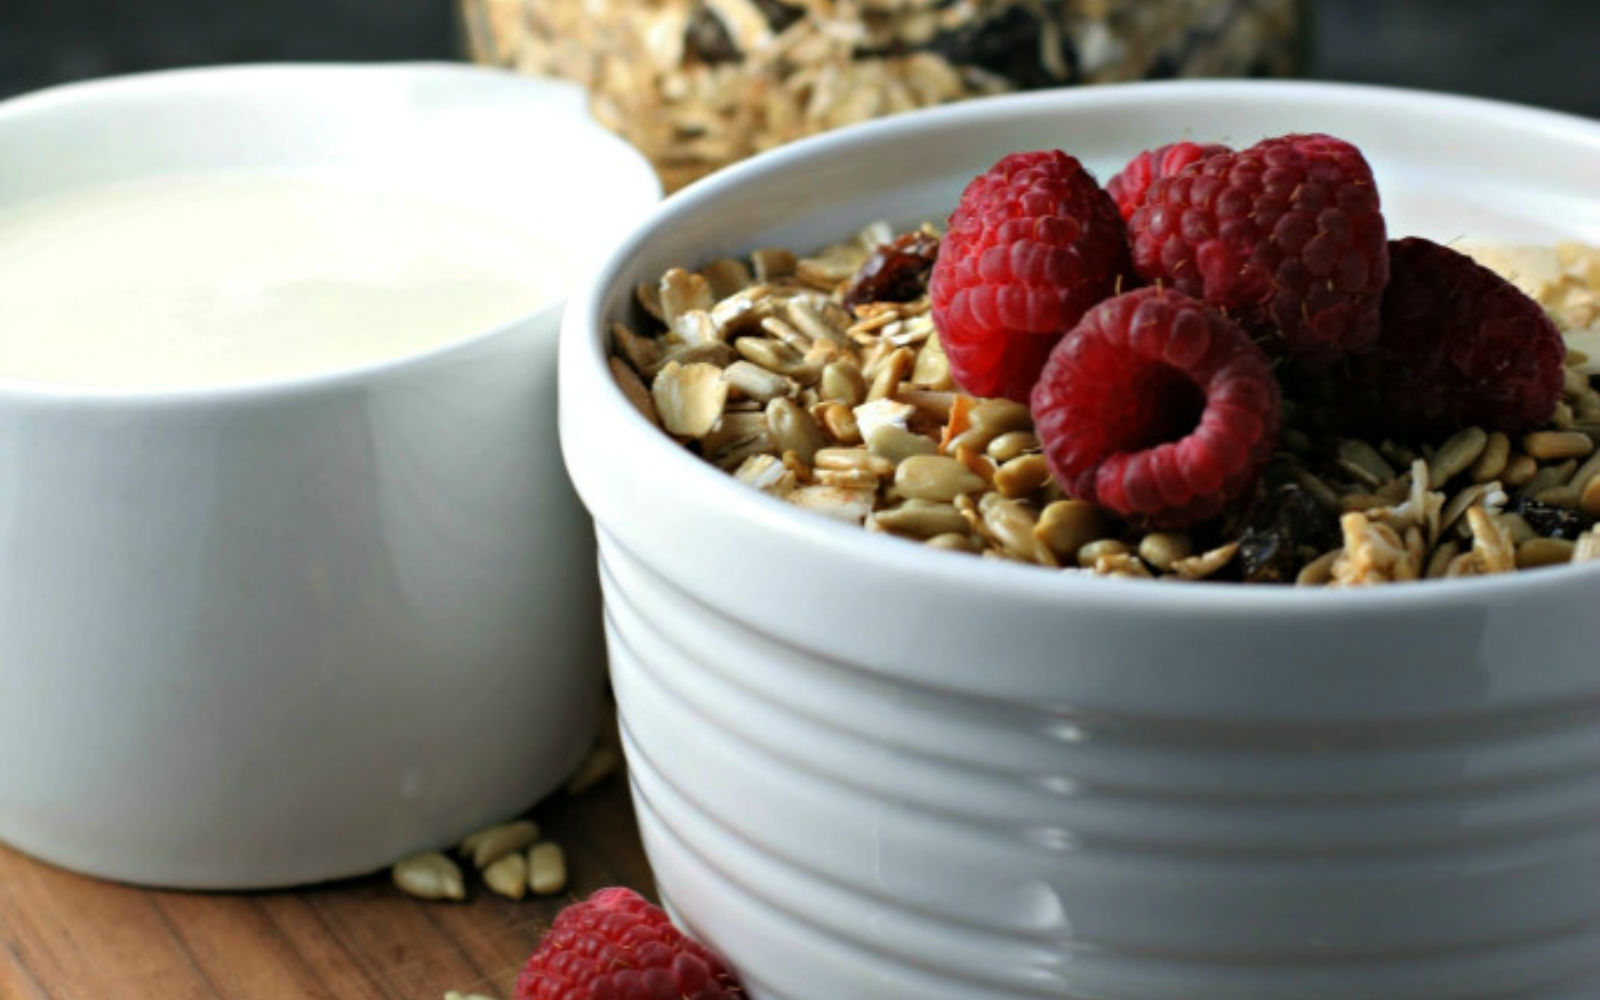 Vegan Gluten-Free Sunflower Muesli topped with raspberries